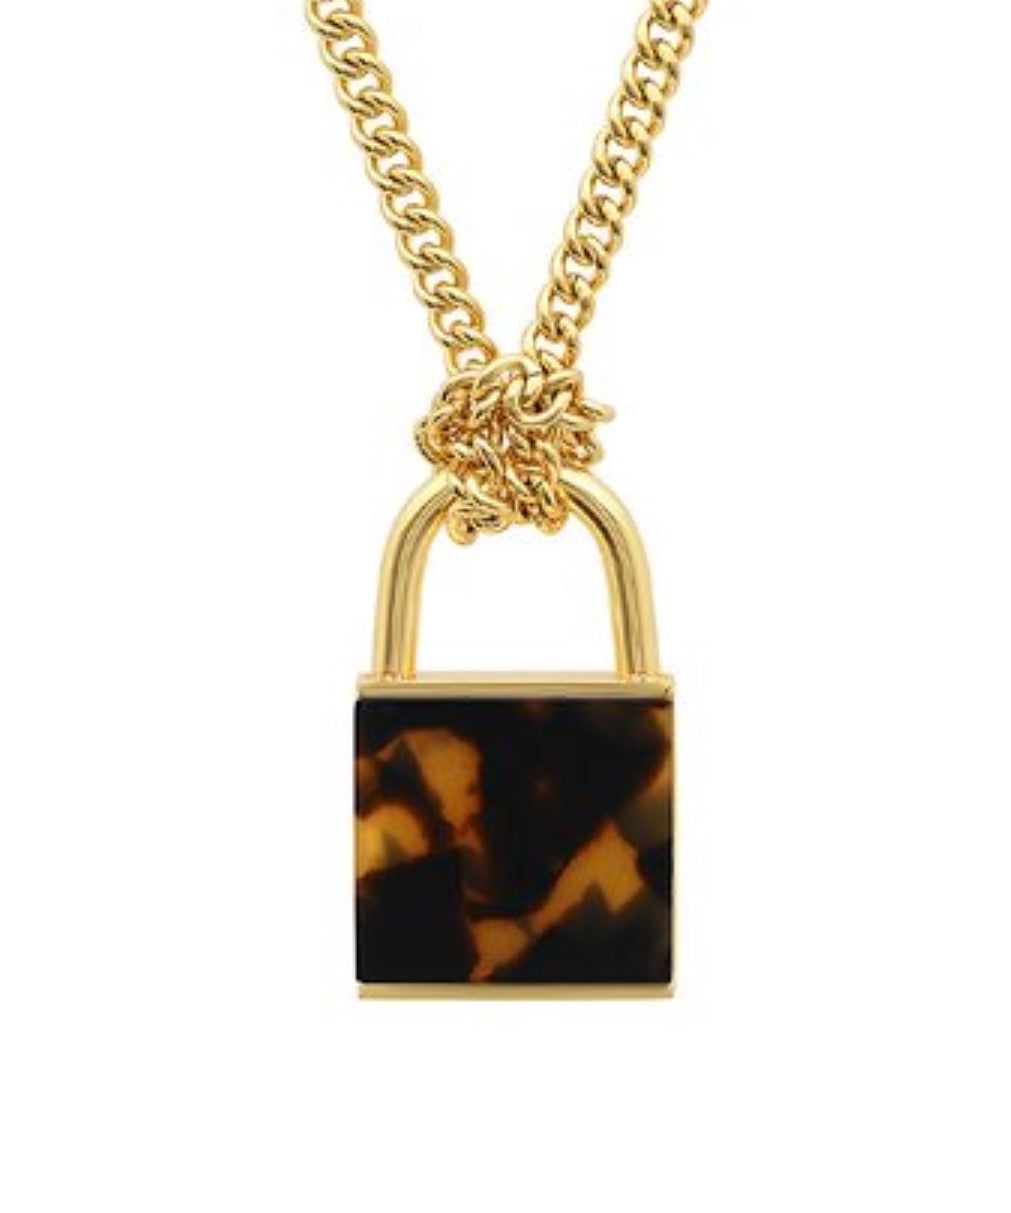 Necklace - Gold & Tortoise Locket